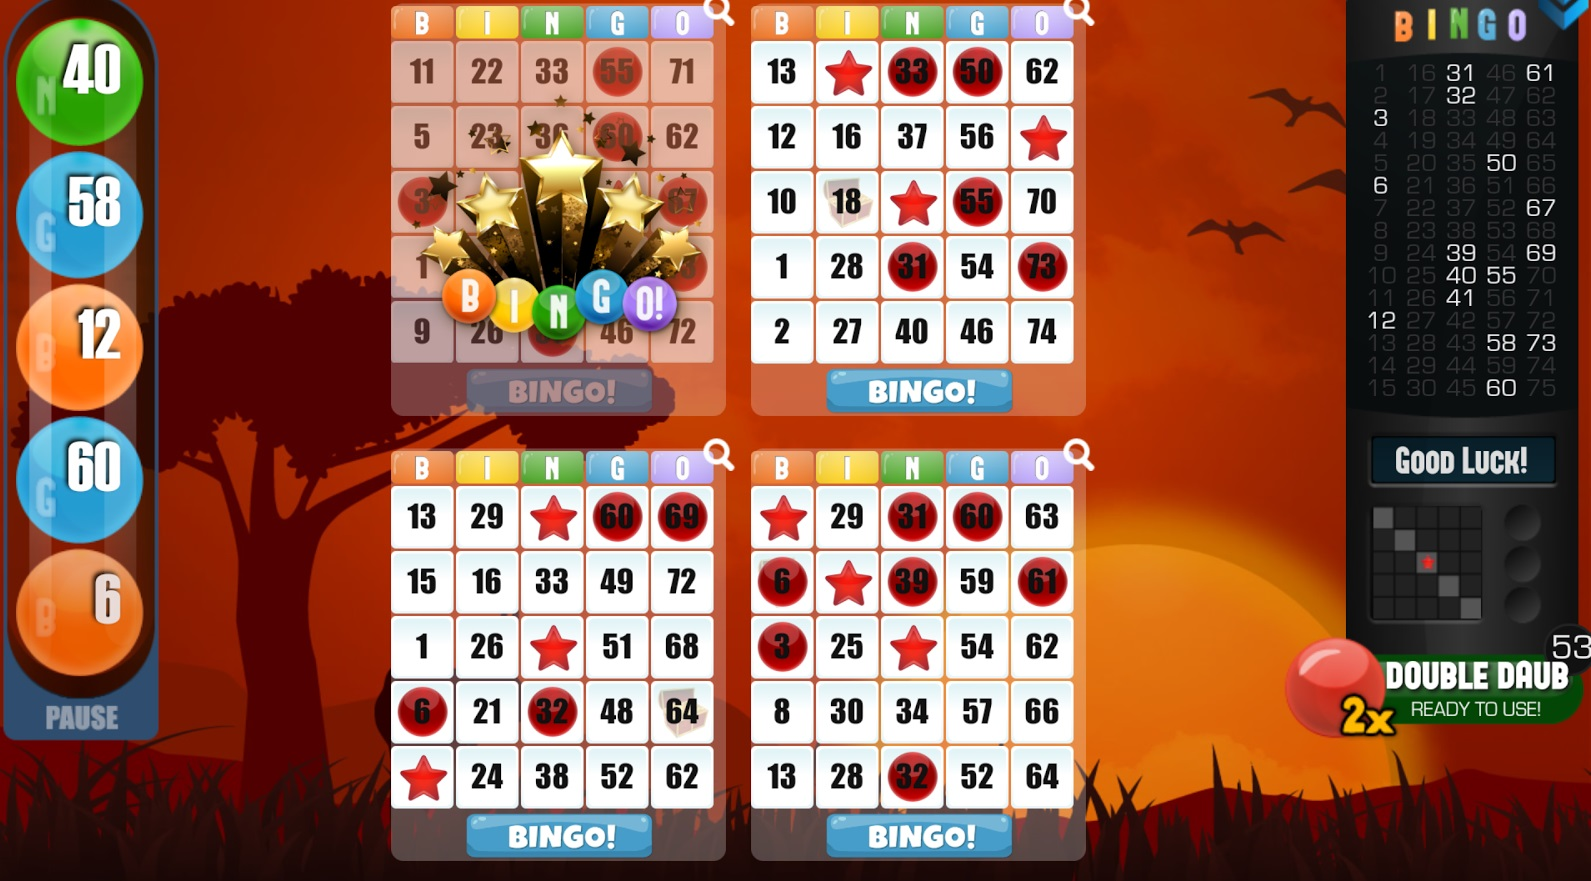 Music Ball Bingo - Play for Free Online with No Downloads